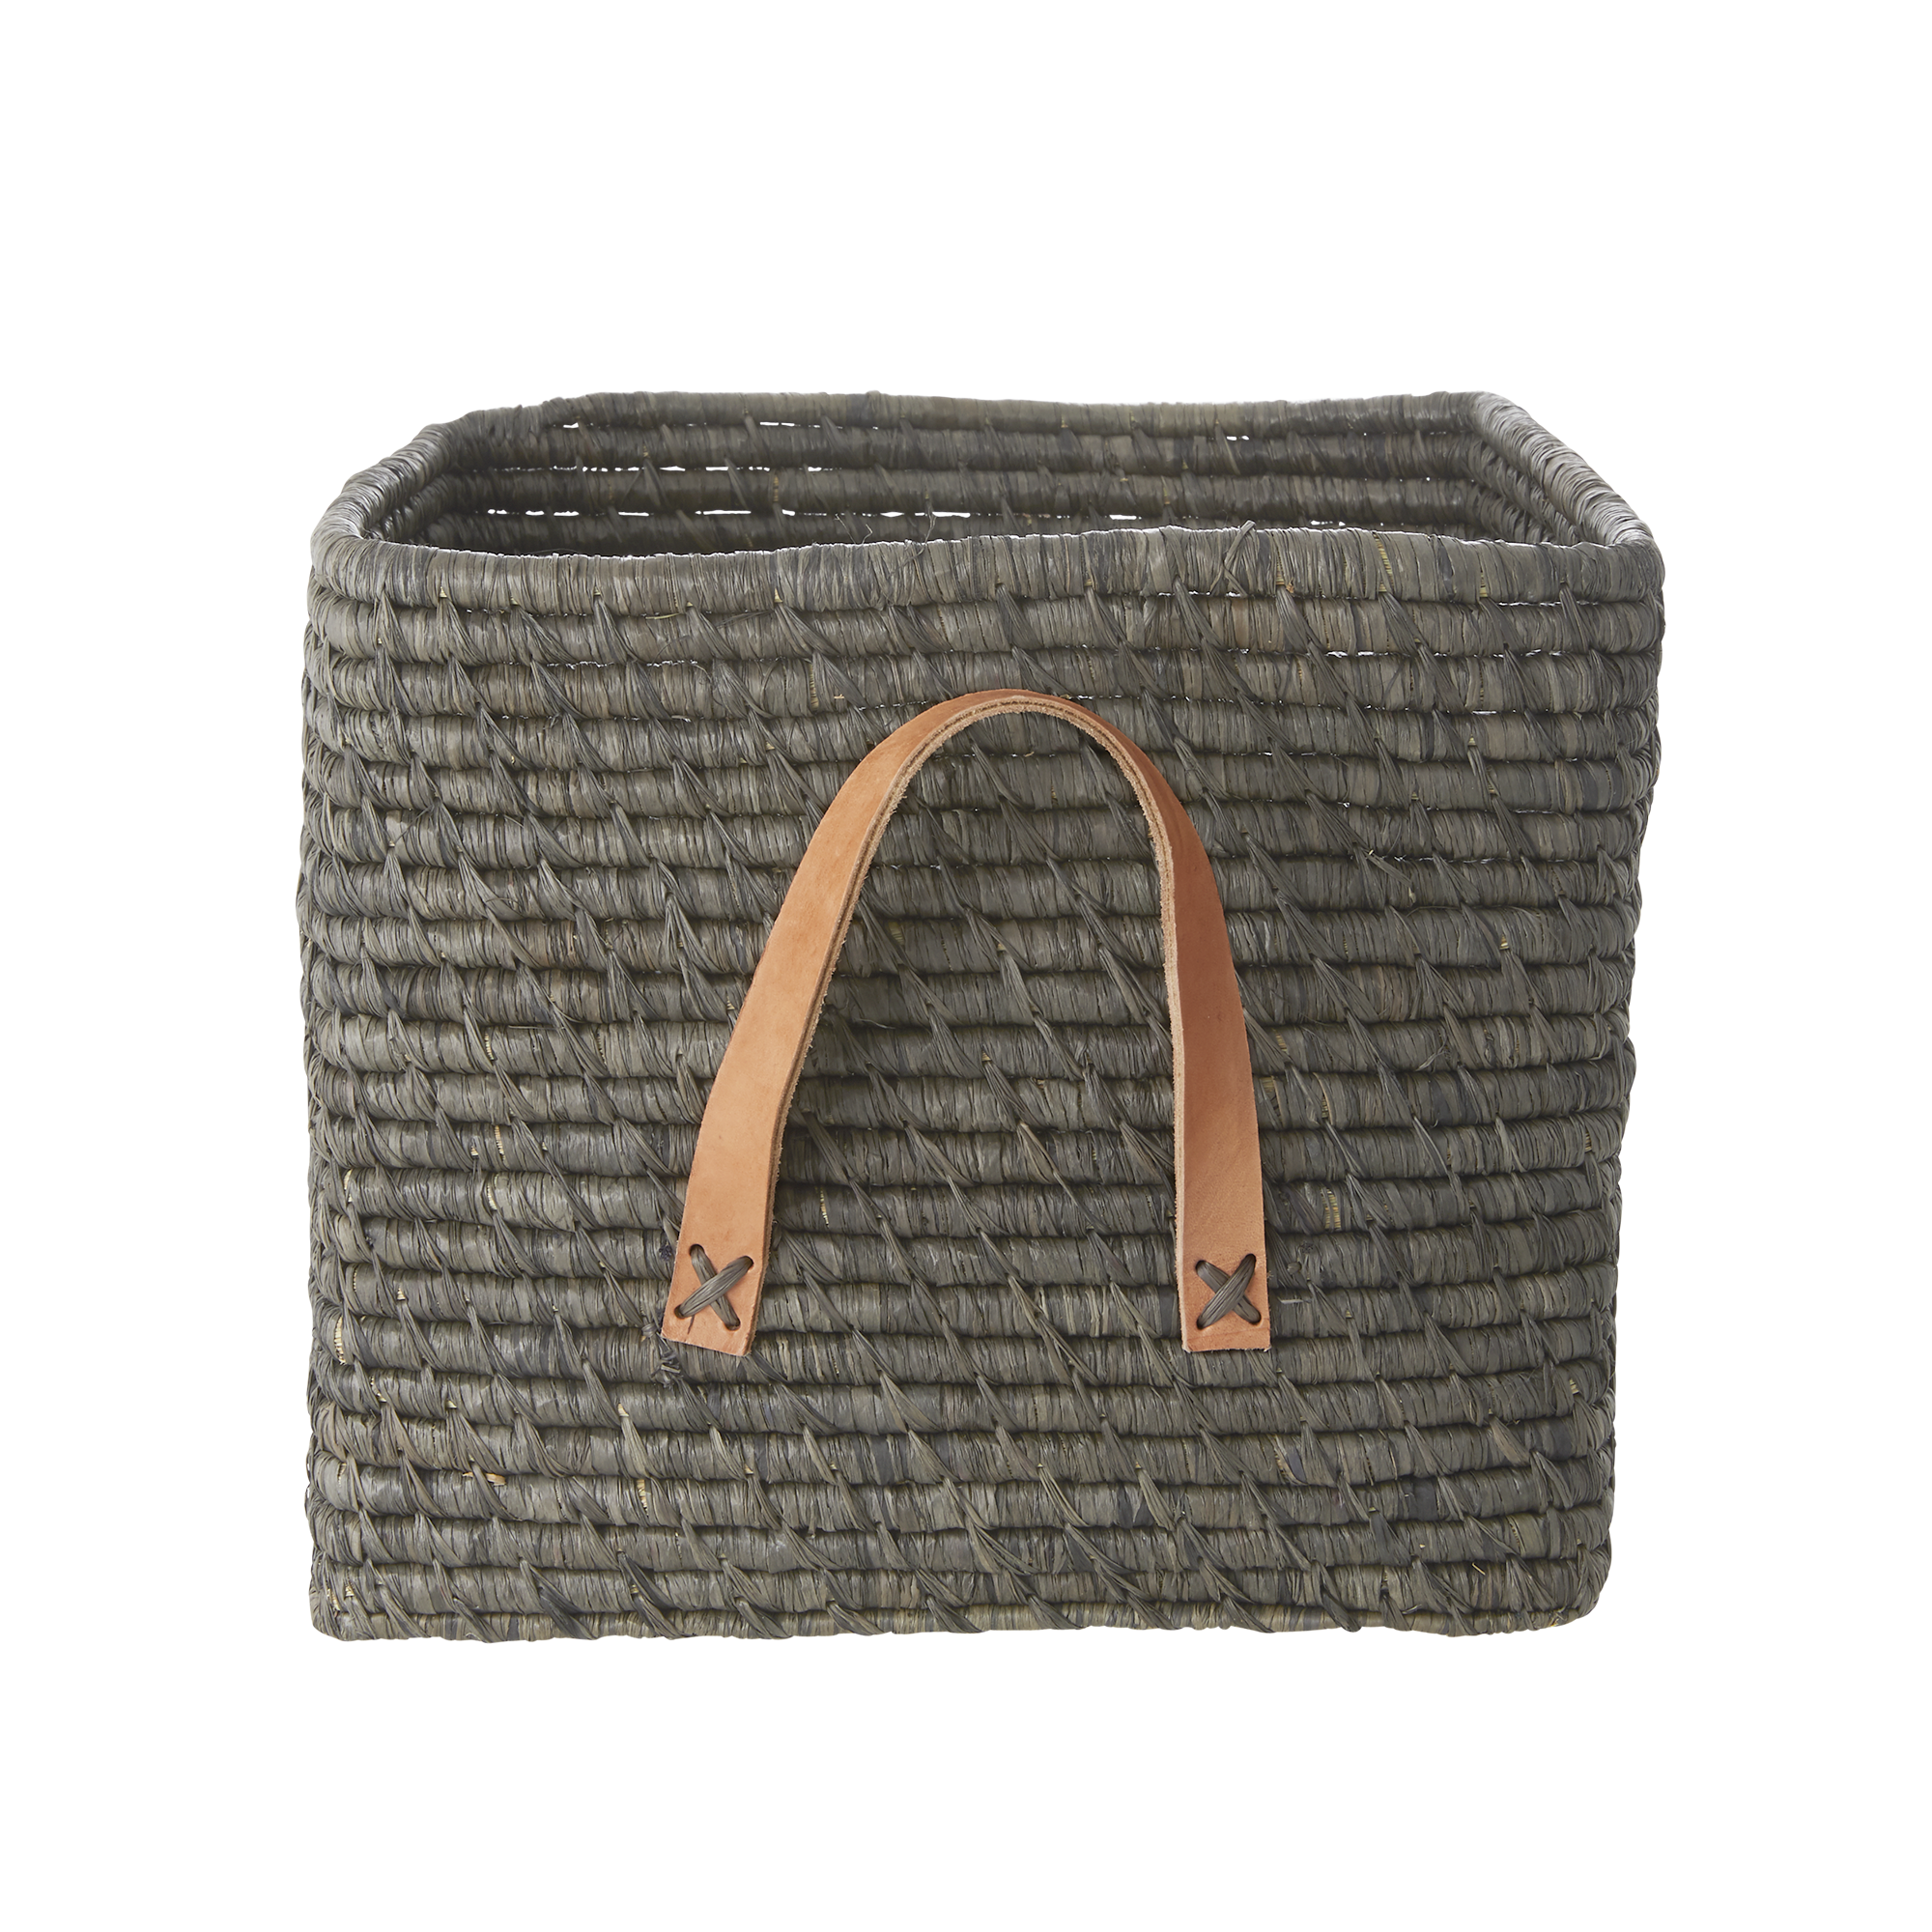 Rice - Small Square Raffia Basket with Leather Handles - Dark Grey Rose